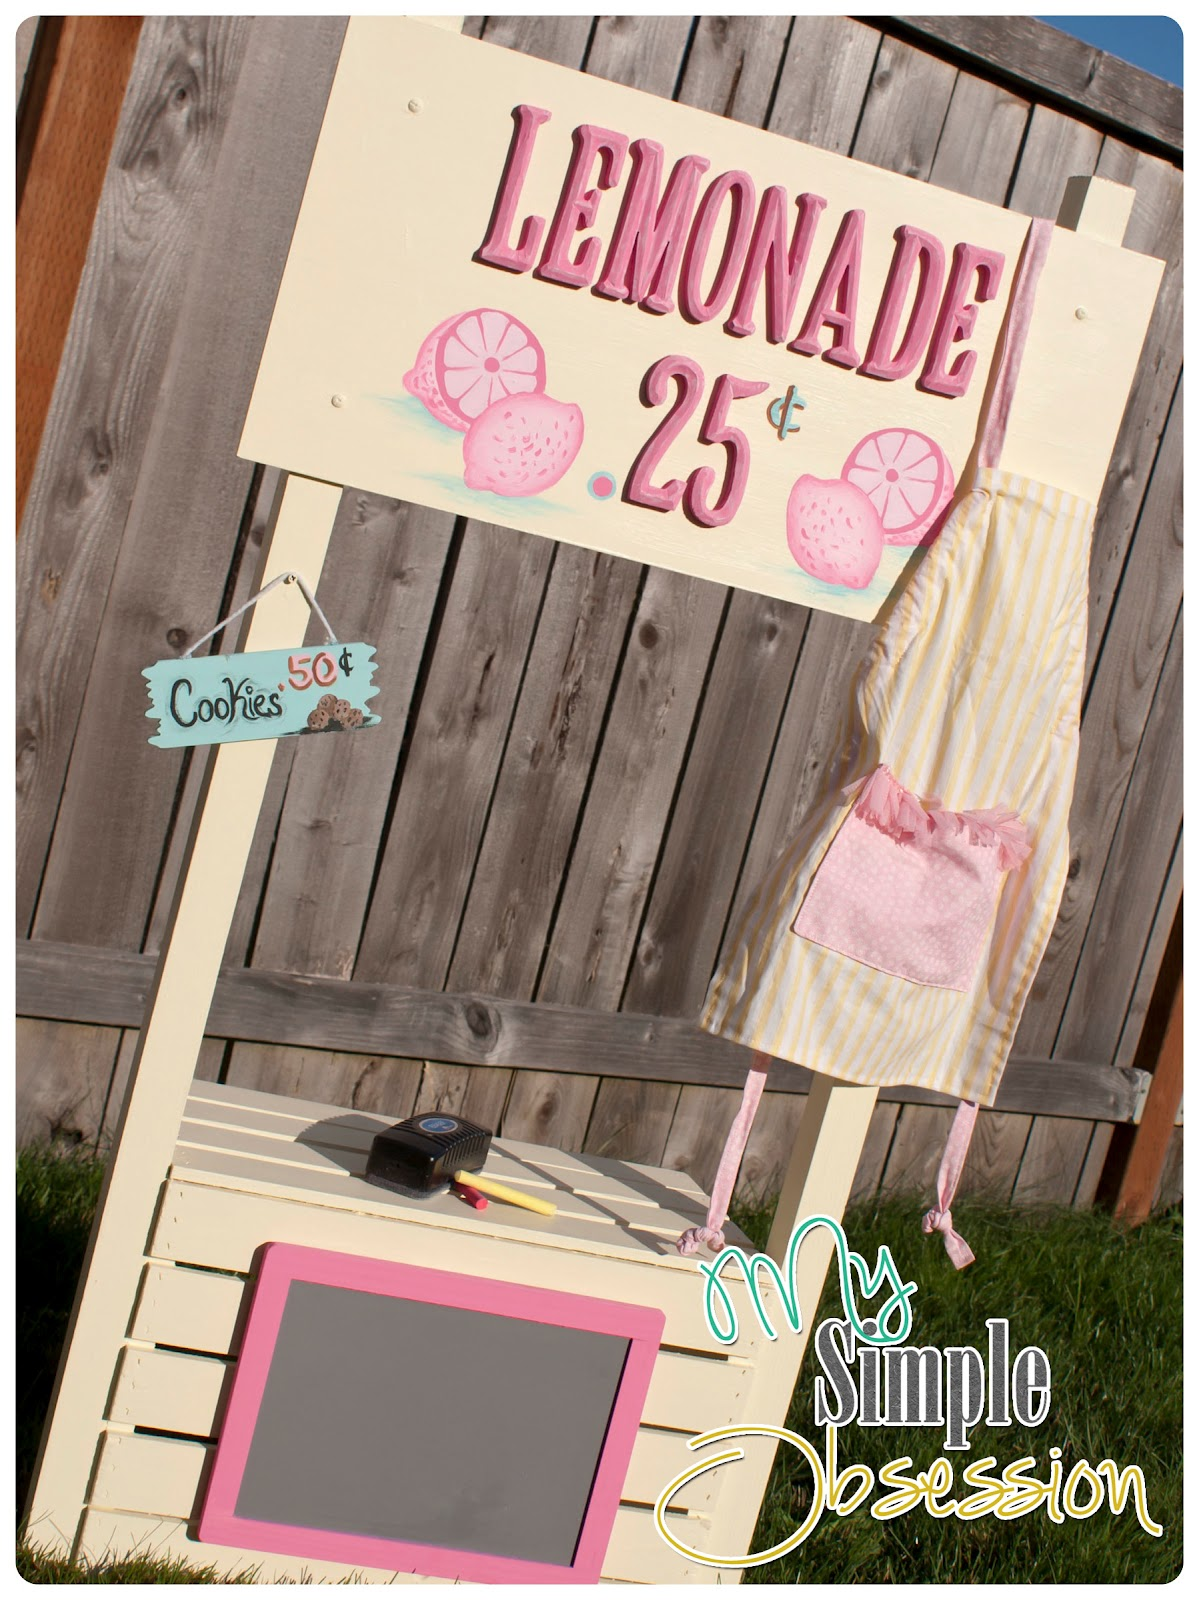 Easy-To-Build Lemonade Stand